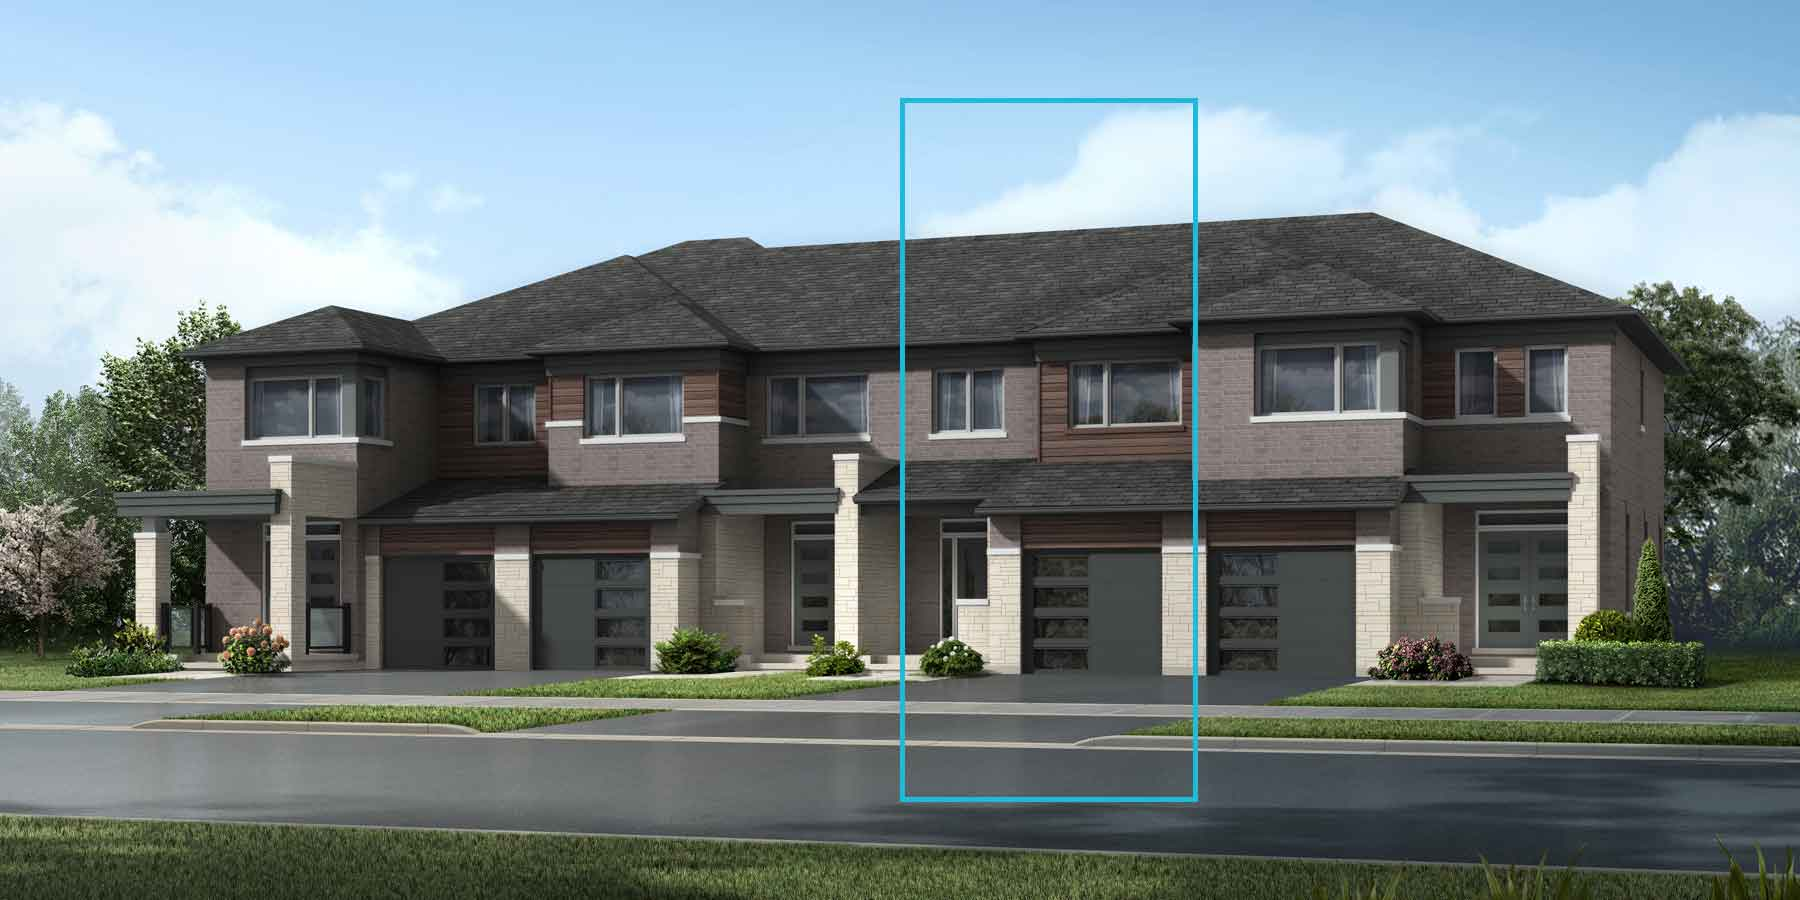 The Cranbrook Plan elevationtransitional_southestates_cranbrook at Wildflower Crossing in Kitchener Ontario by Mattamy Homes